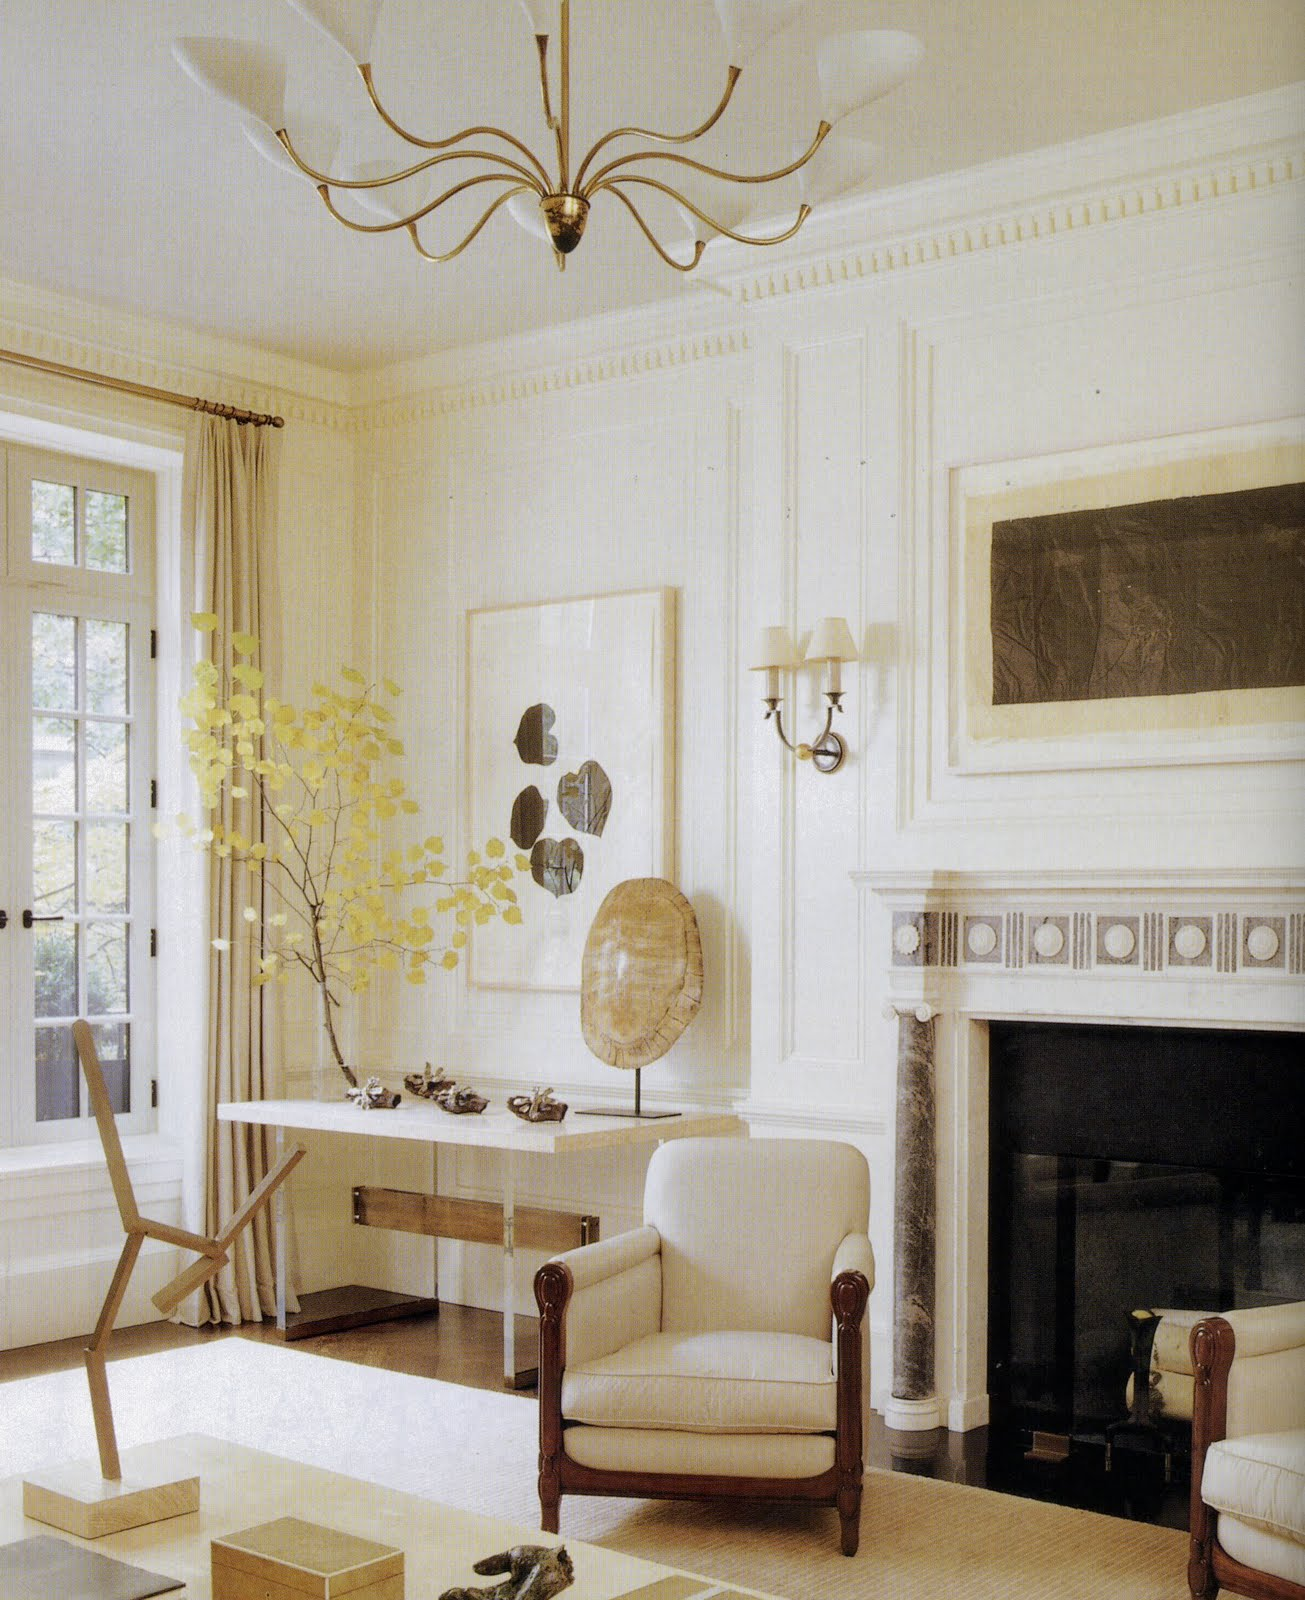 AESTHETICALLY THINKING: THE PANELED ROOM